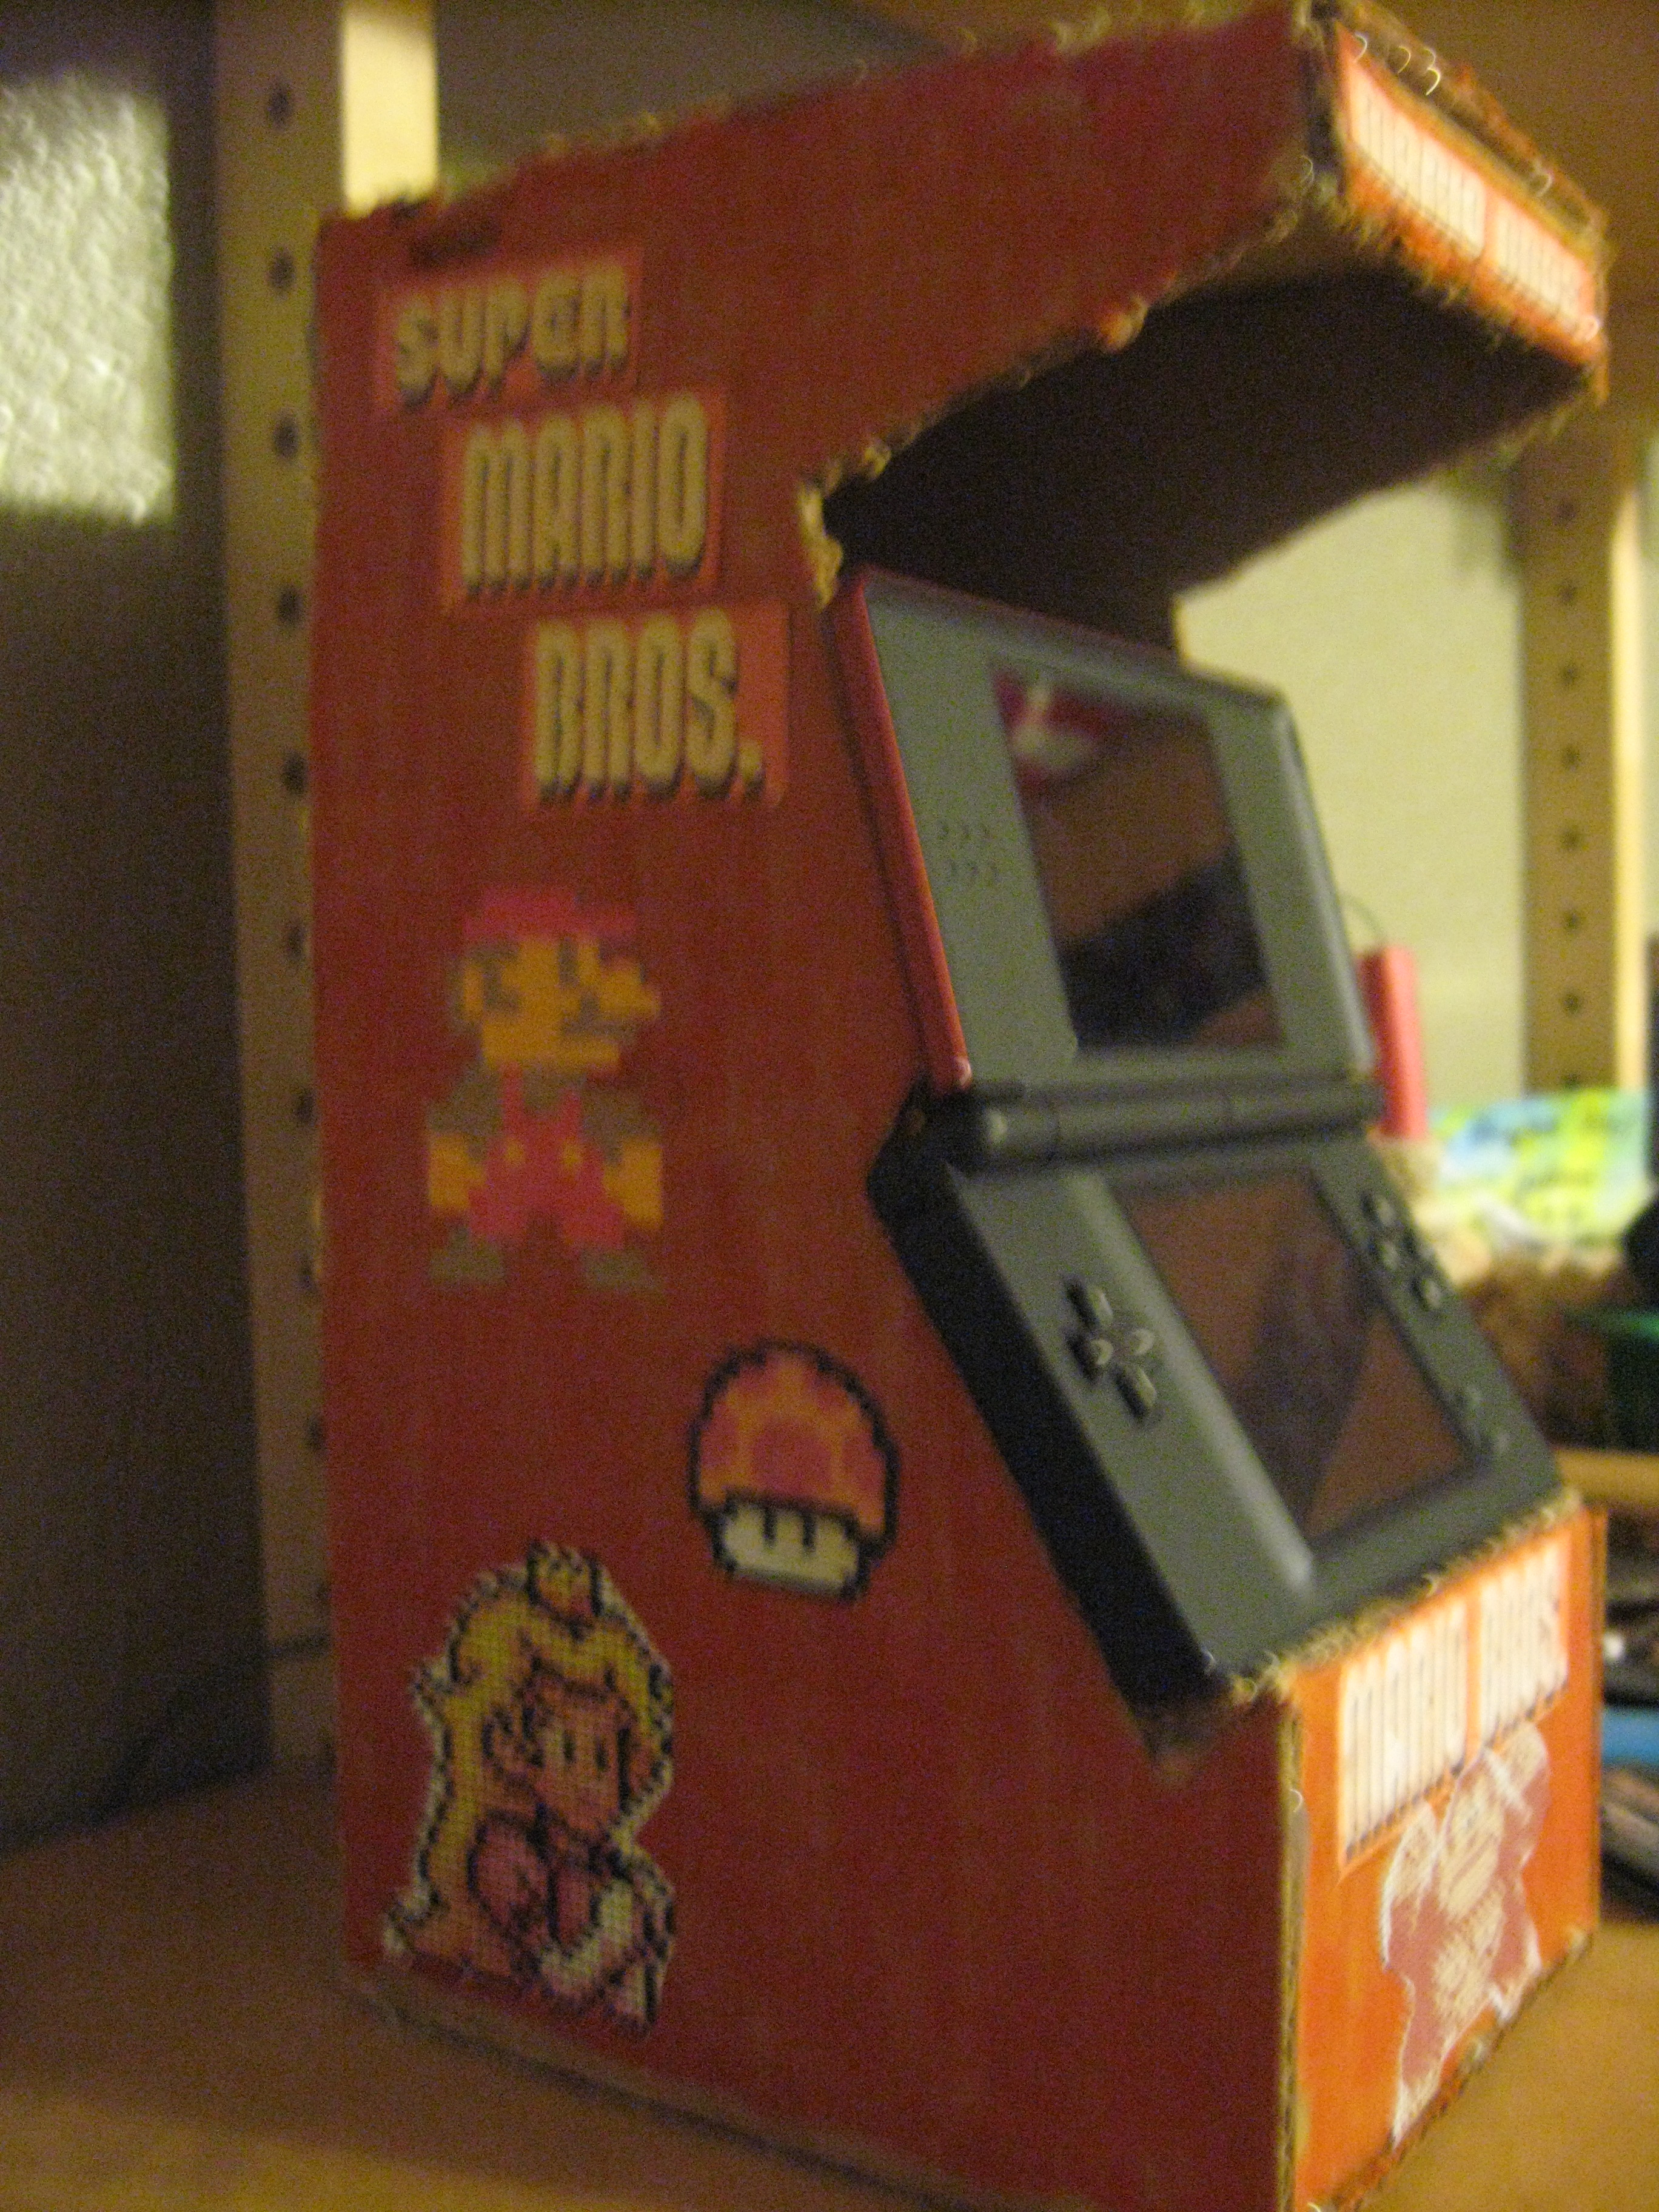 Nintendo DS arcade stand / charger